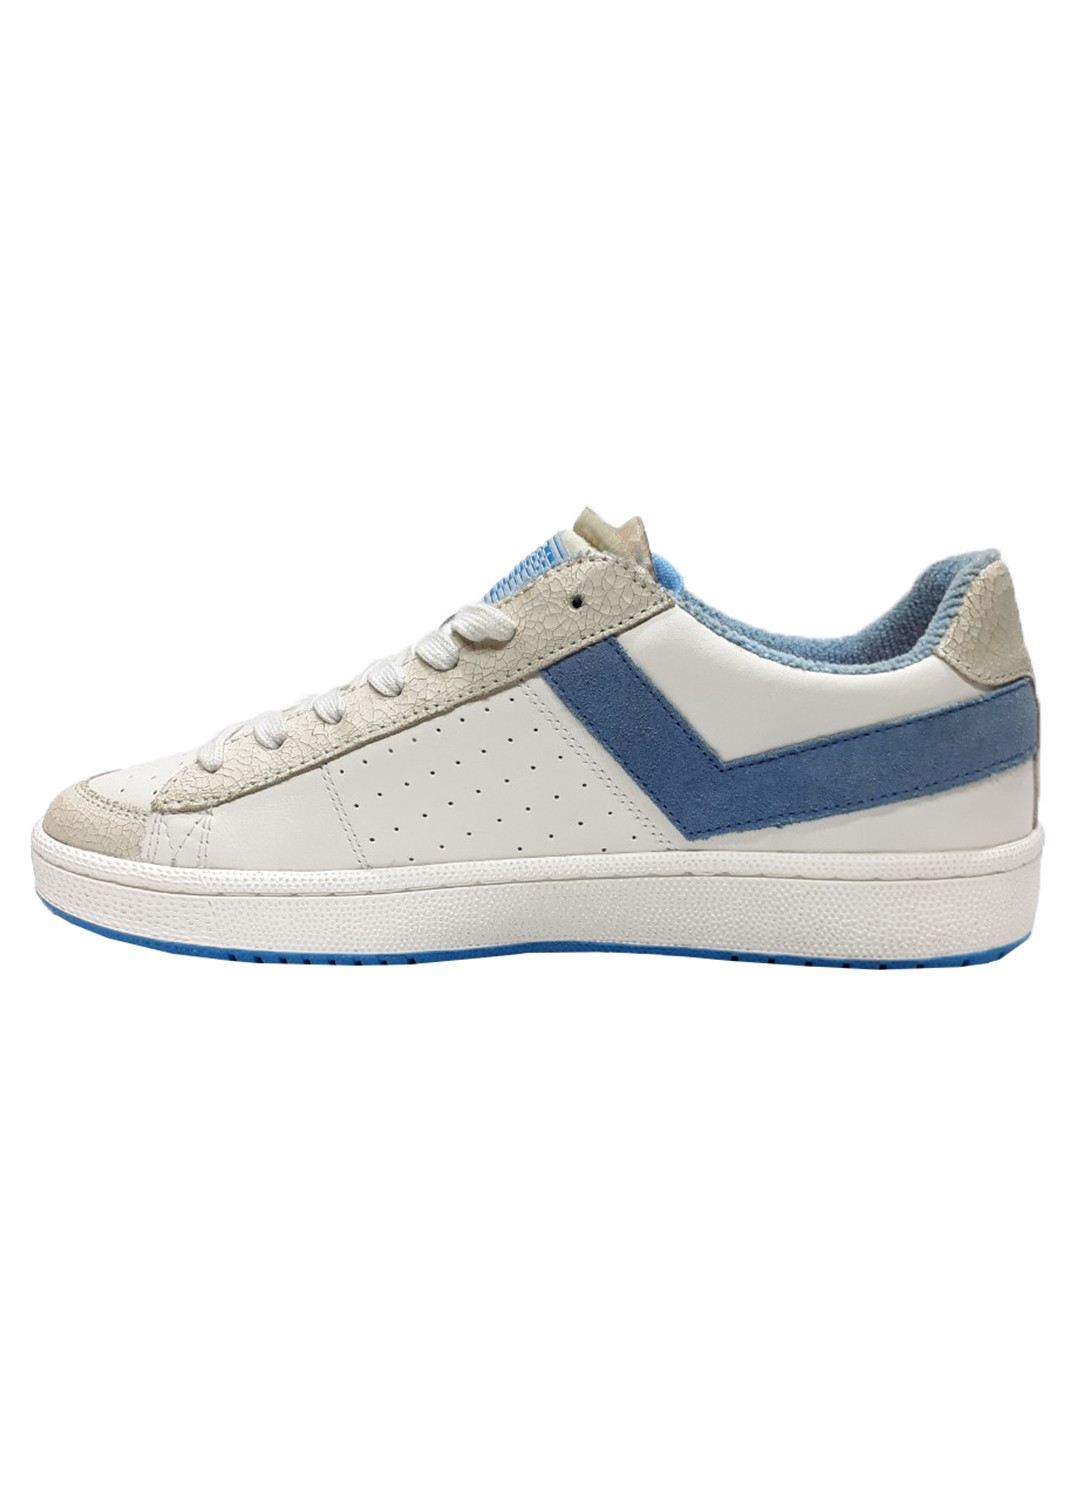 Giày Sneaker Pony PRO 80 TRẮNG / XANH GROTTO - Unisex